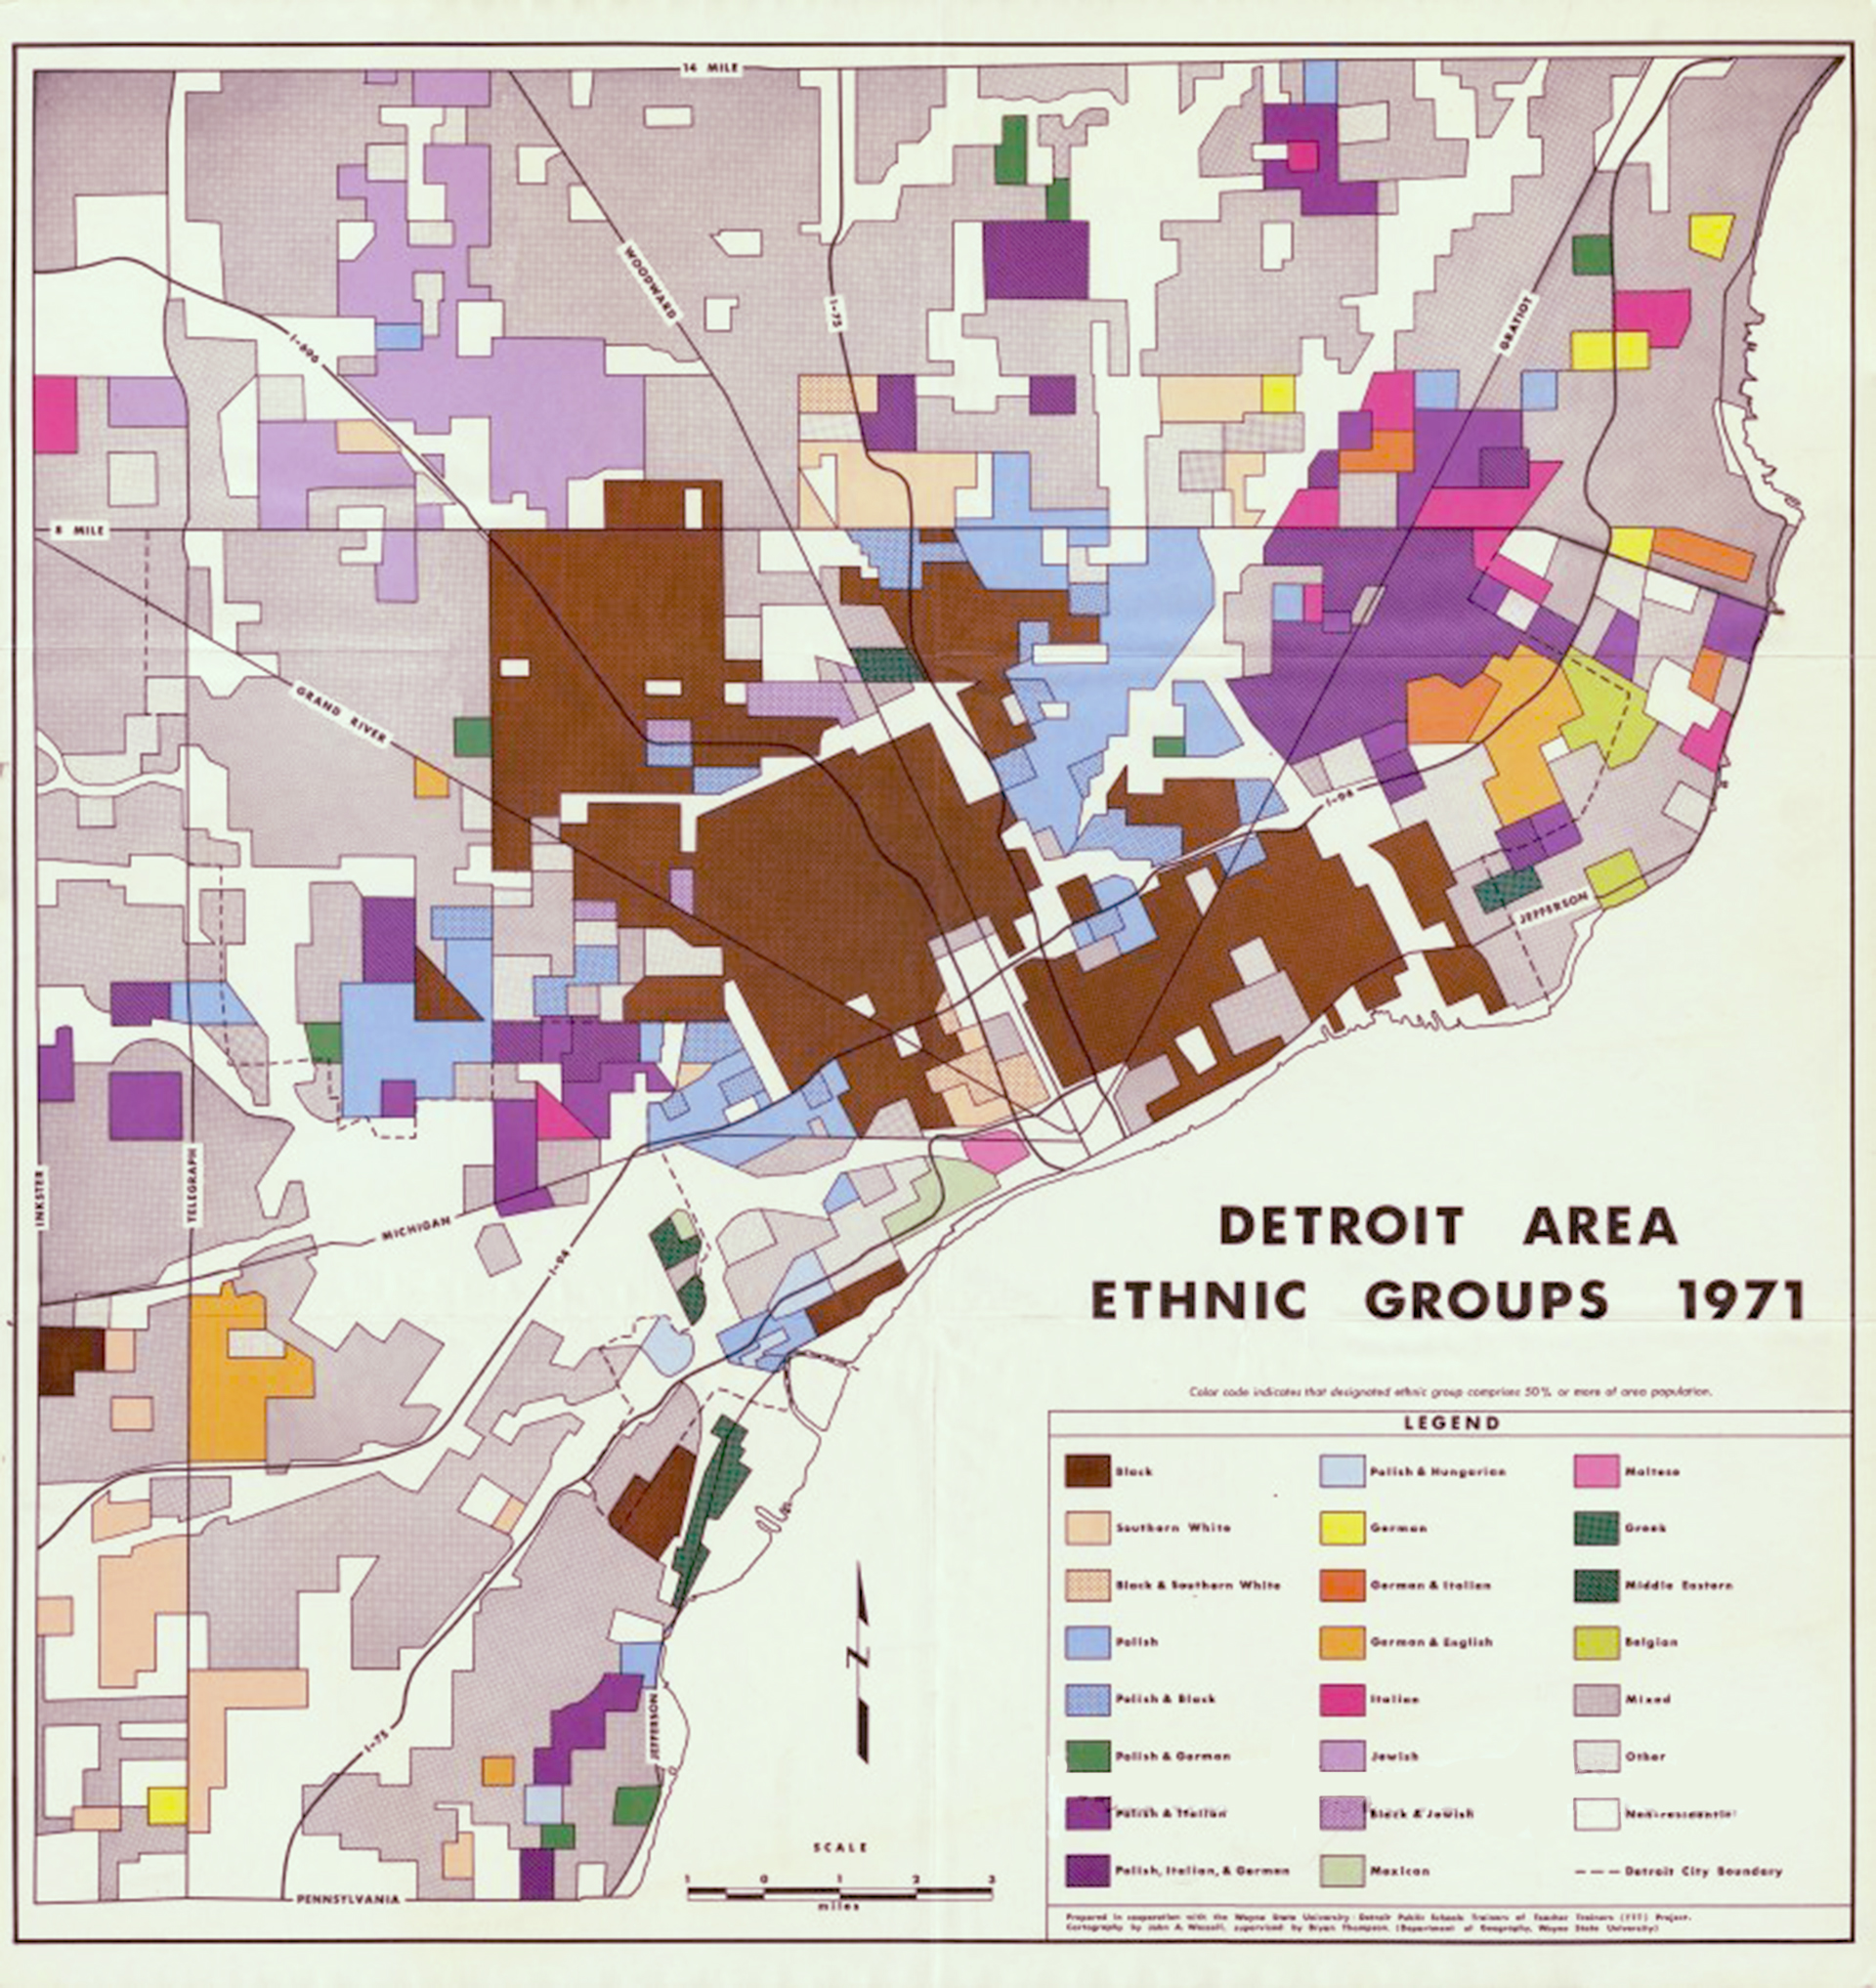 Detroit Area Ethnic Groups 1971 - Wayne State University - Detroit Public Schools Trainers of Teacher Trainers (TTT) Project.